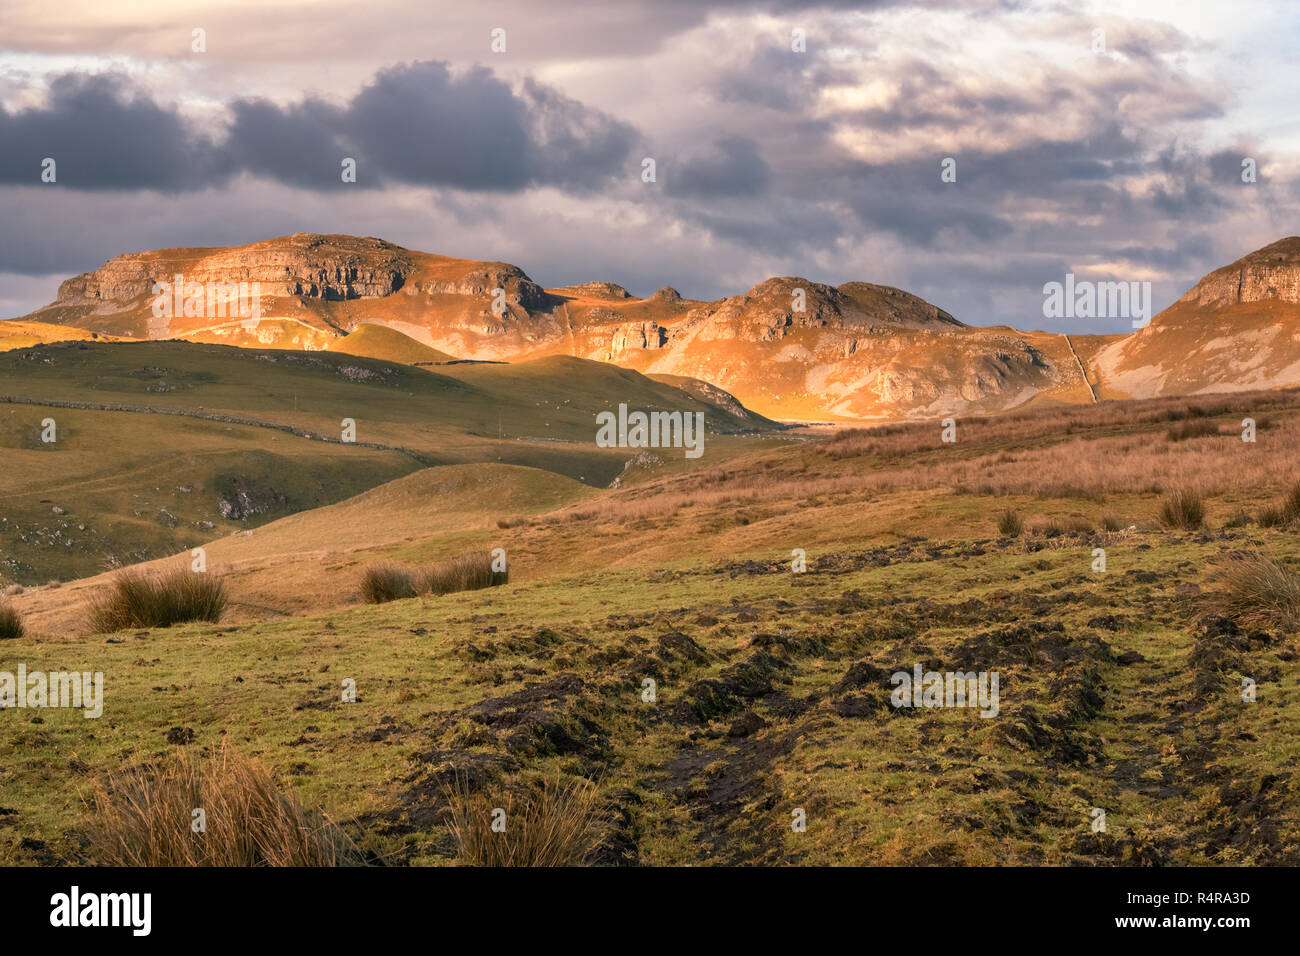 Close to Settle is the dramatic limestone crags of Attermire Scar. The white rock contrasts strongly with the surrounding vivid green grassland. - Stock Image